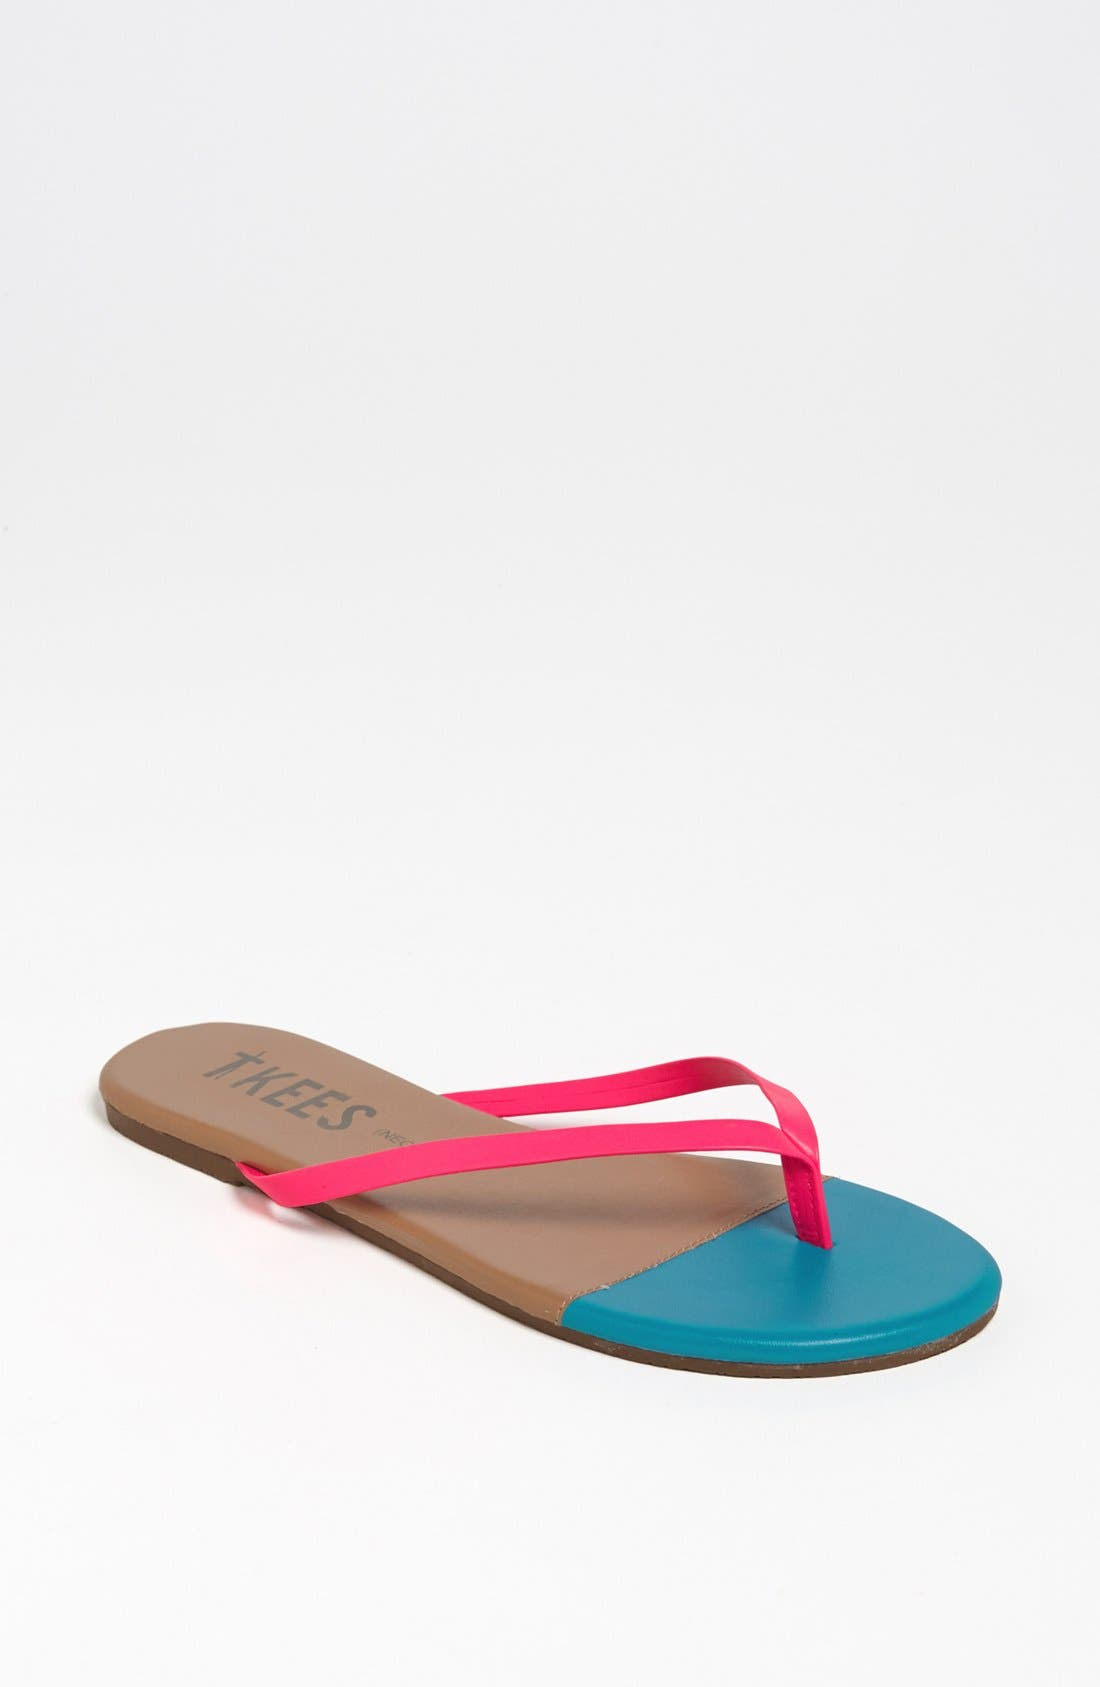 Main Image - TKEES 'Neon Tips' Flip Flop